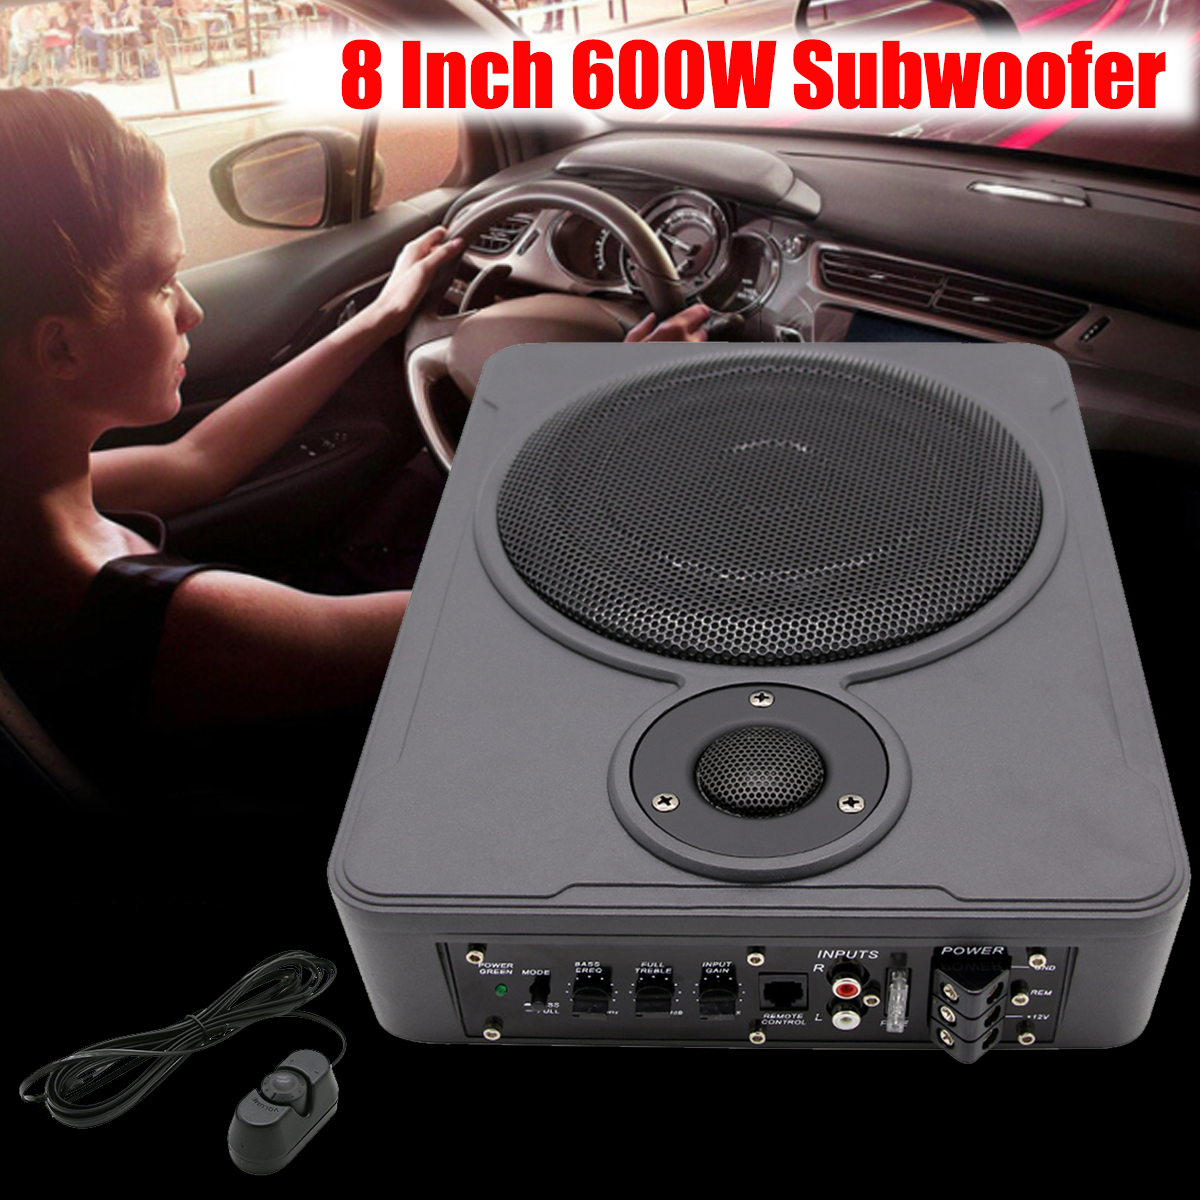 hight resolution of 8 inch bluetooth car home subwoofer under seat sub 600w stereo subwoofer car audio speaker music system sound woofer in car multimedia player from